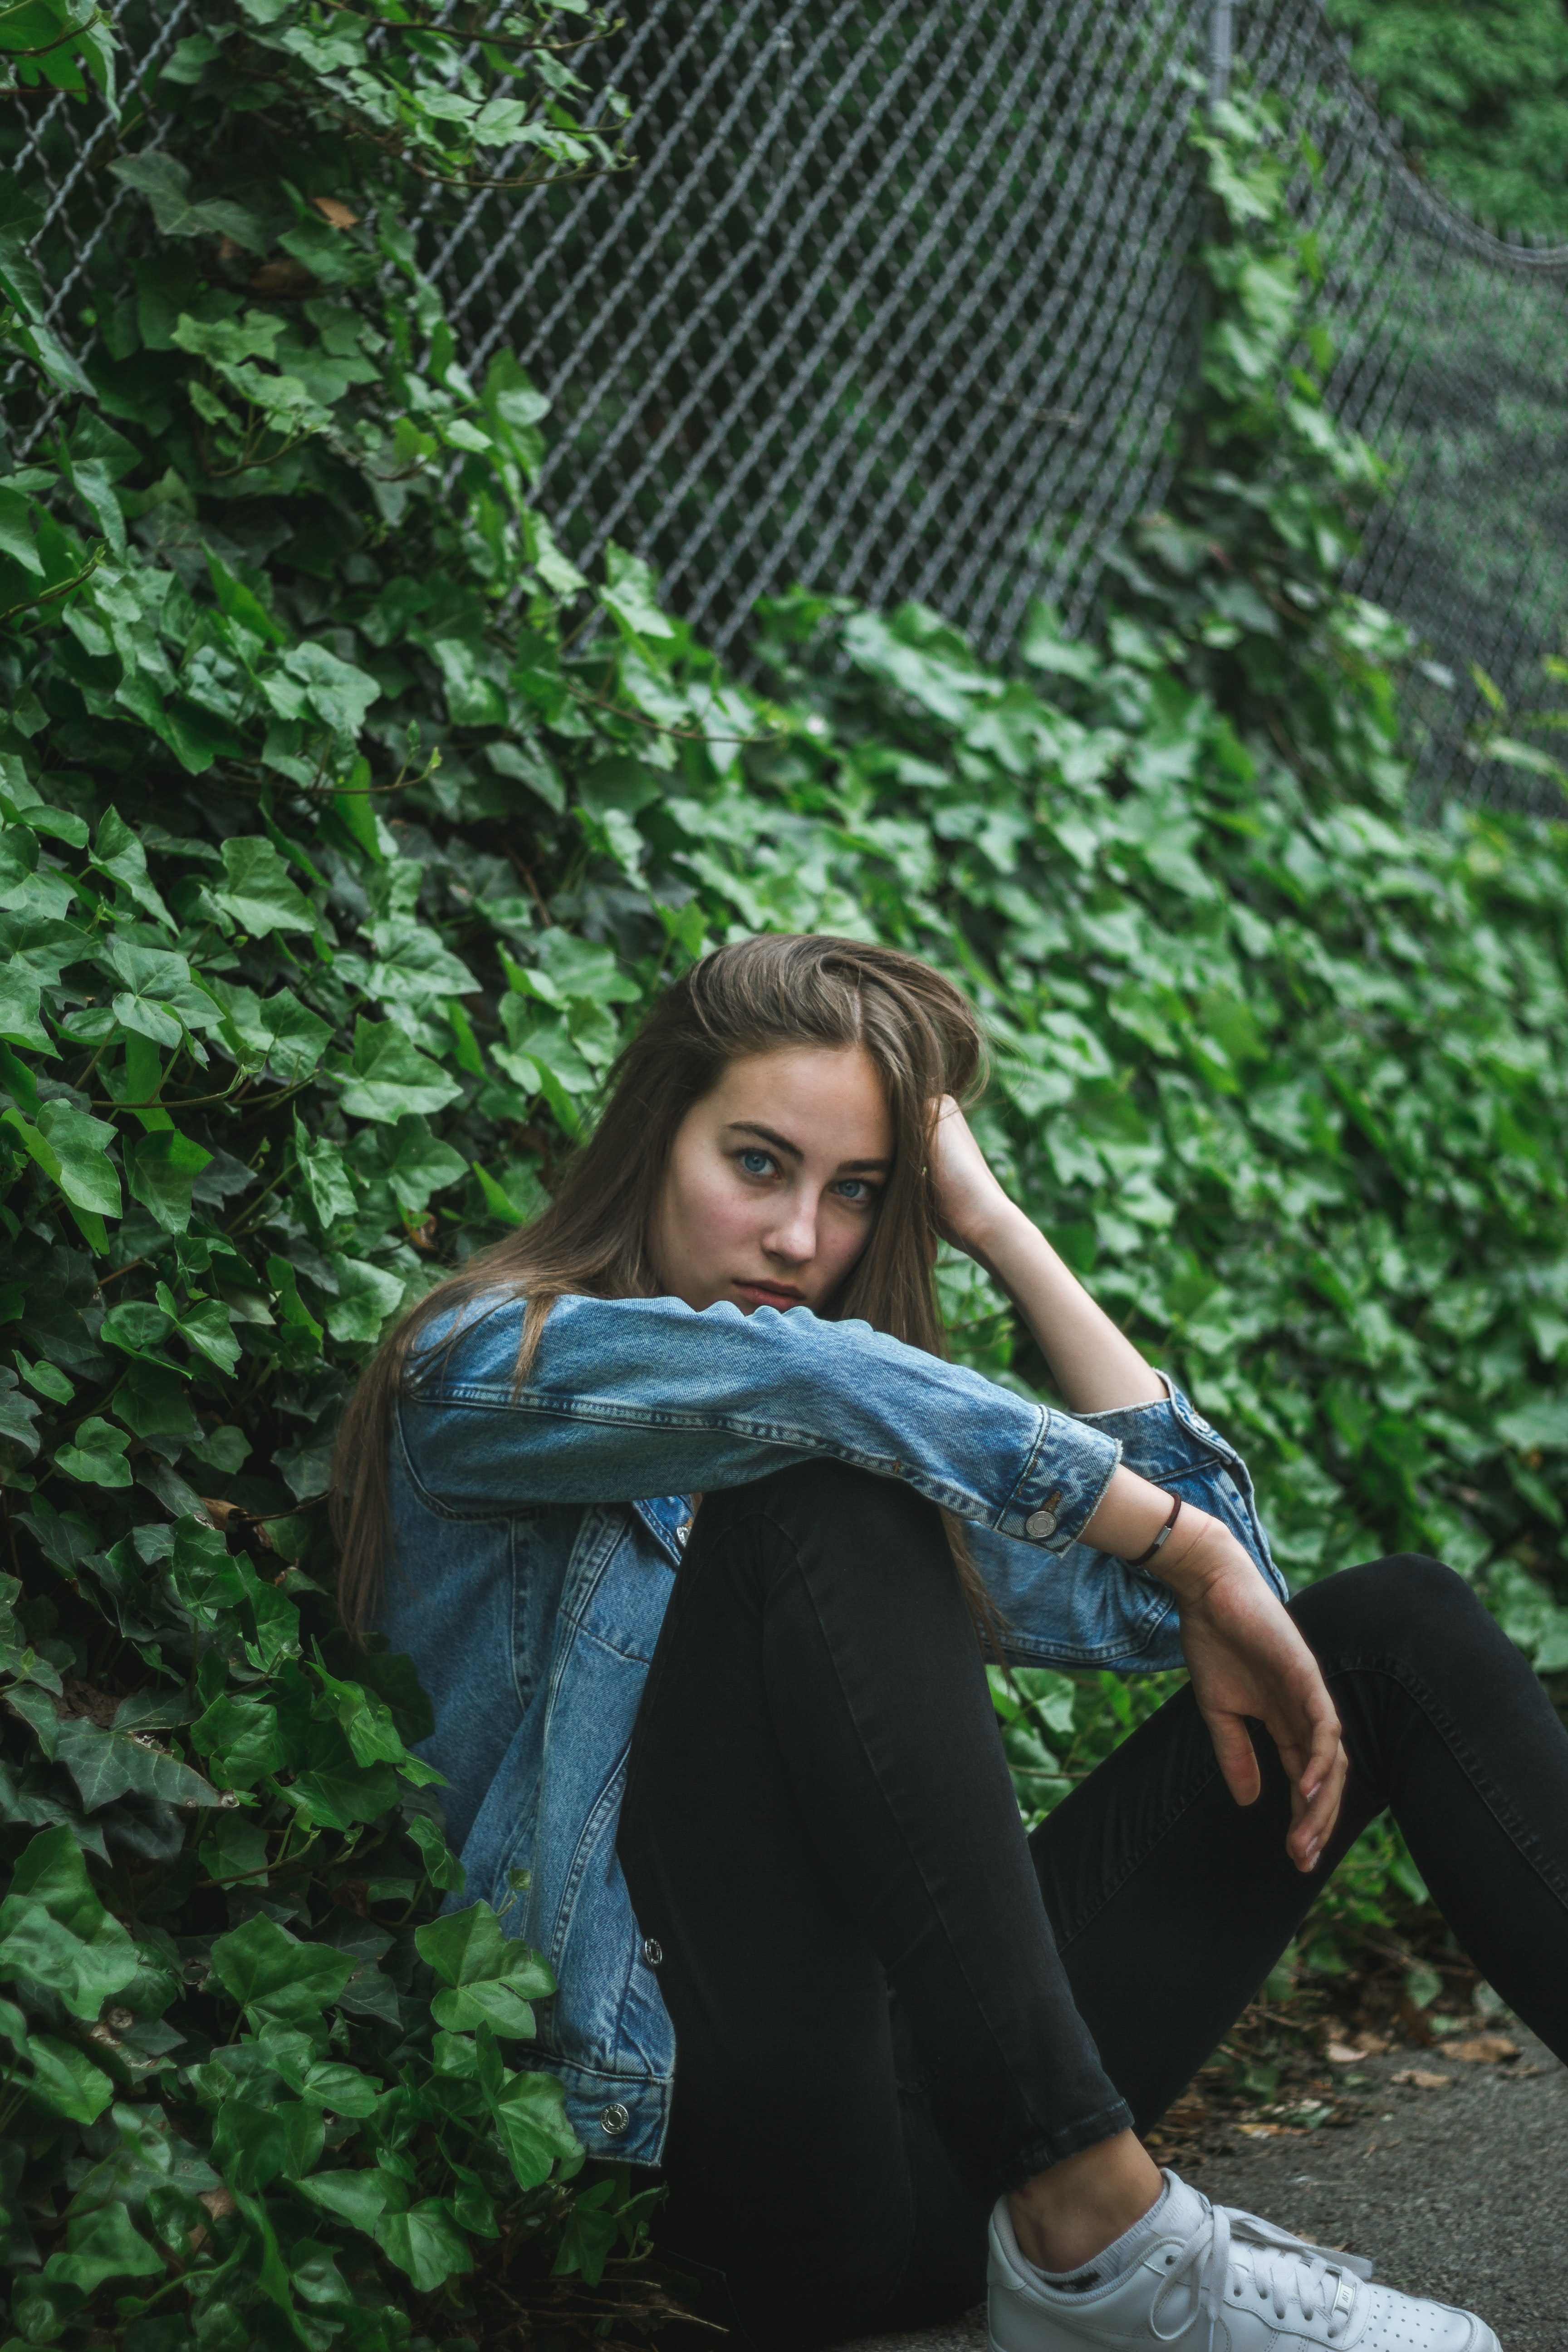 woman sitting against wire fence with crawling vine plants